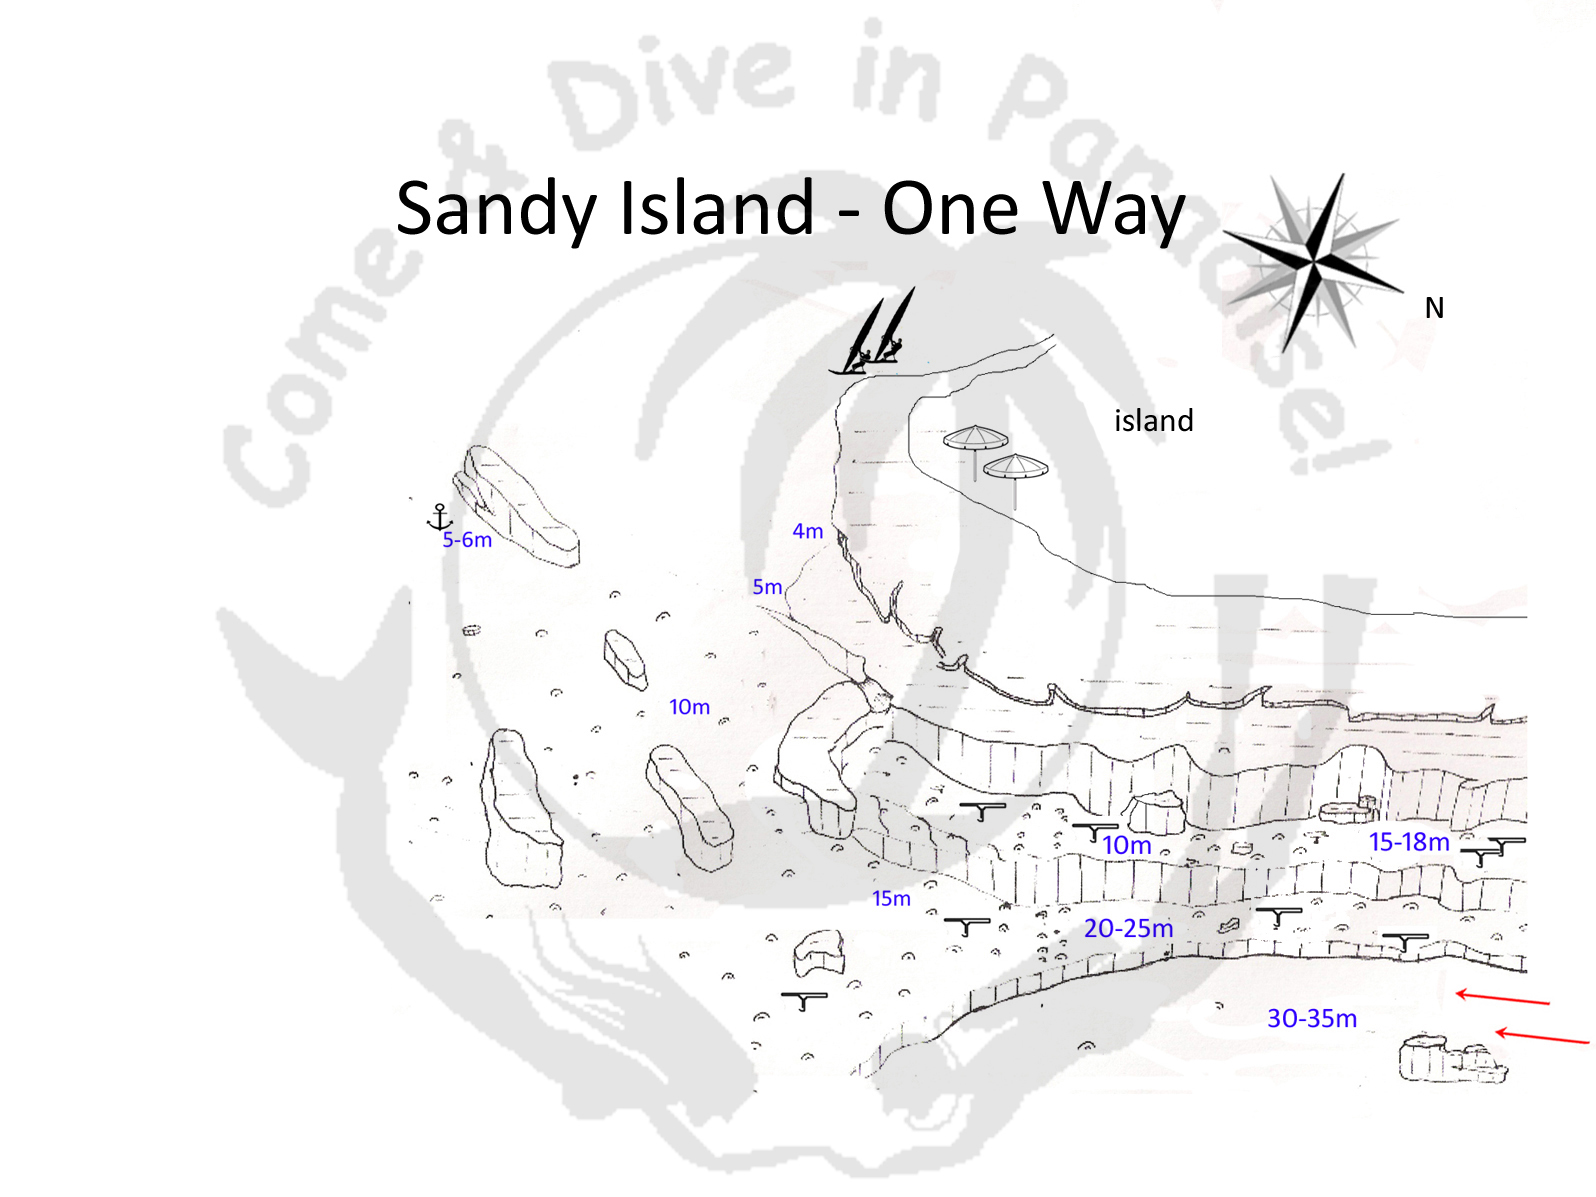 en_sandy_island_one_way.jpg